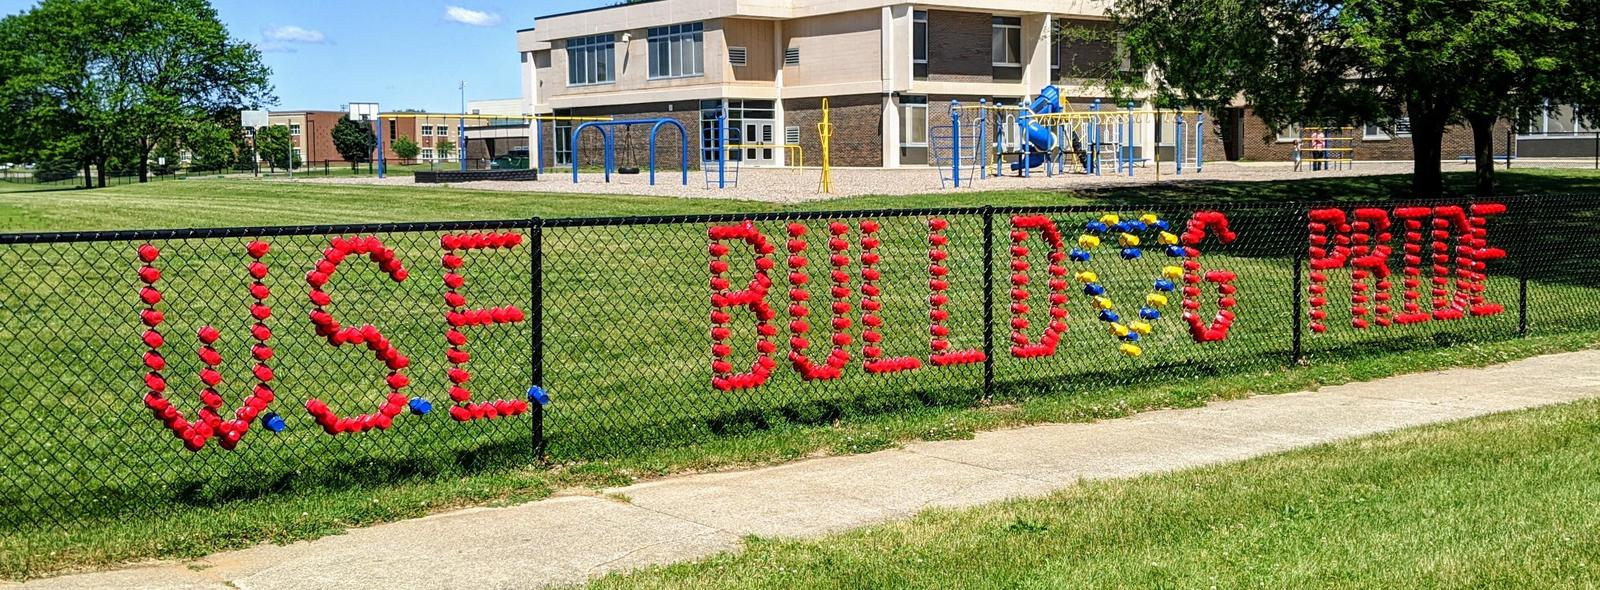 sign in fence says WSE bulldog pride